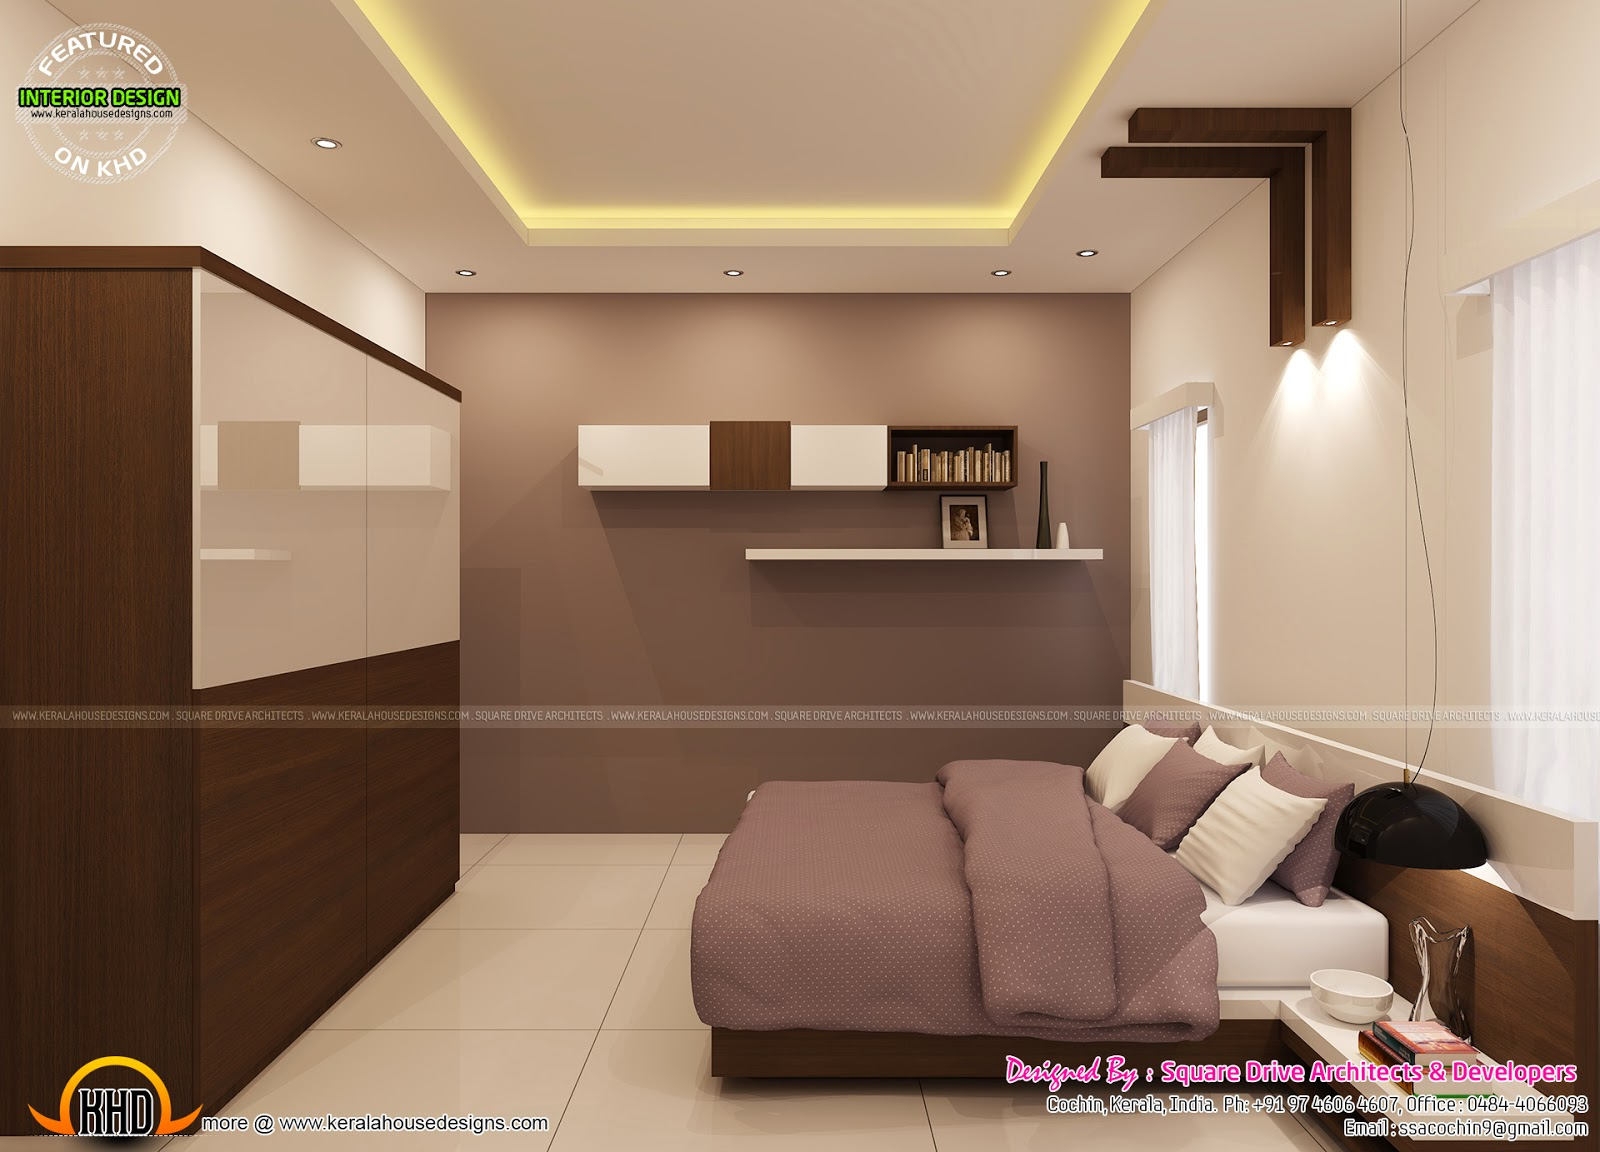 Bedroom interior decoration kerala home design and floor for Master bedroom interior